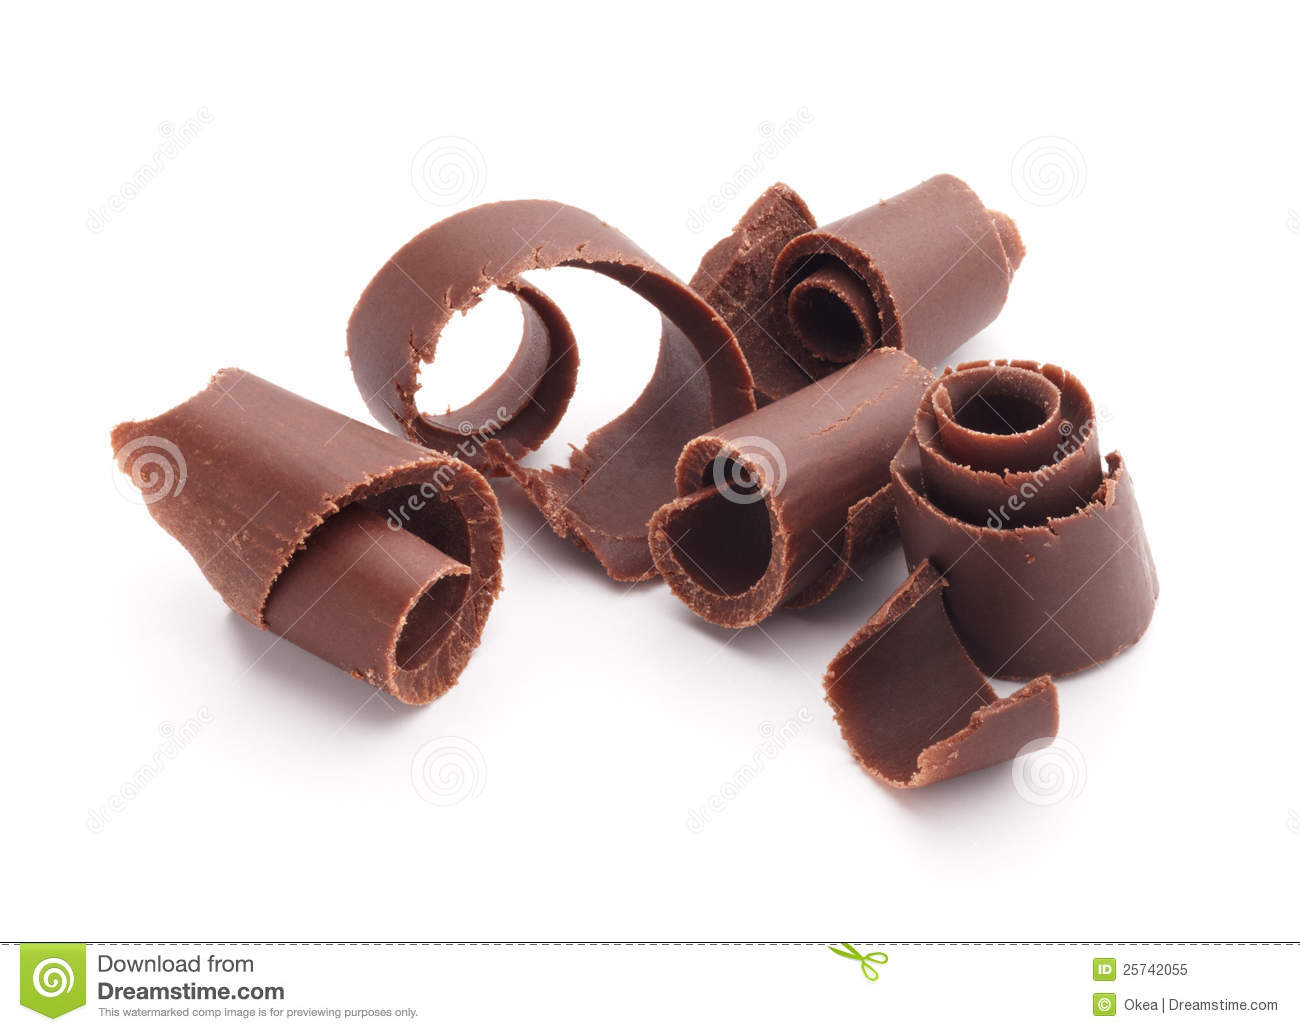 Chocolate Curls Royalty Free Stock Photo - Image: 25742055